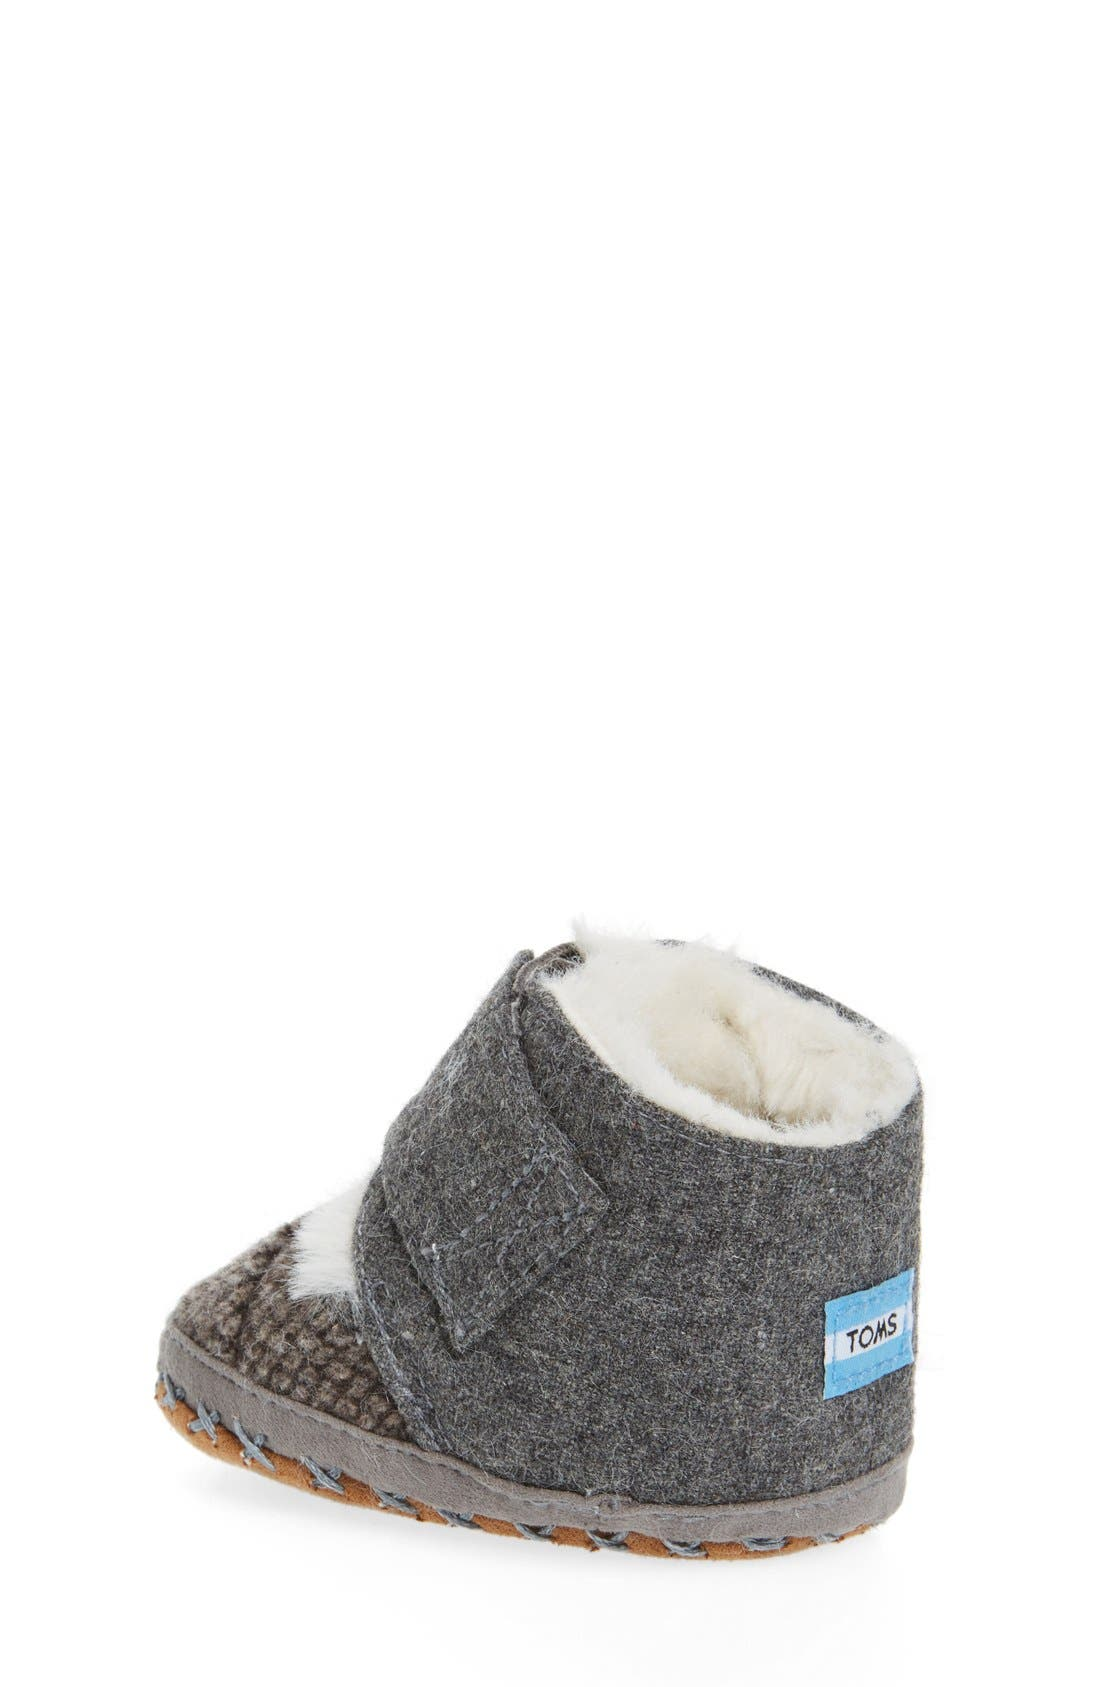 Alternate Image 2  - TOMS Cuna Crib Shoe (Baby)